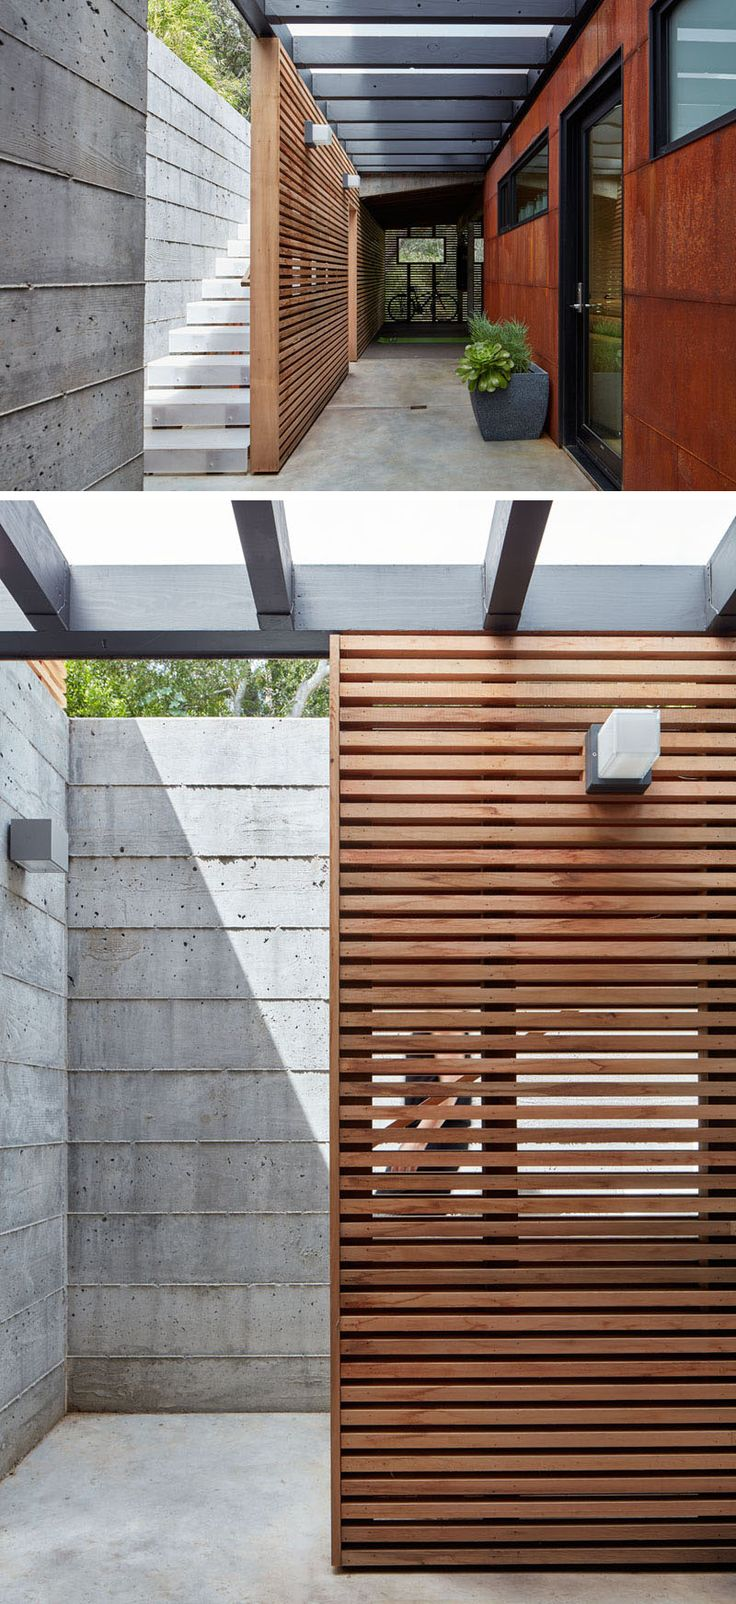 These Concrete Exterior Stairs Have A Wooden Privacy